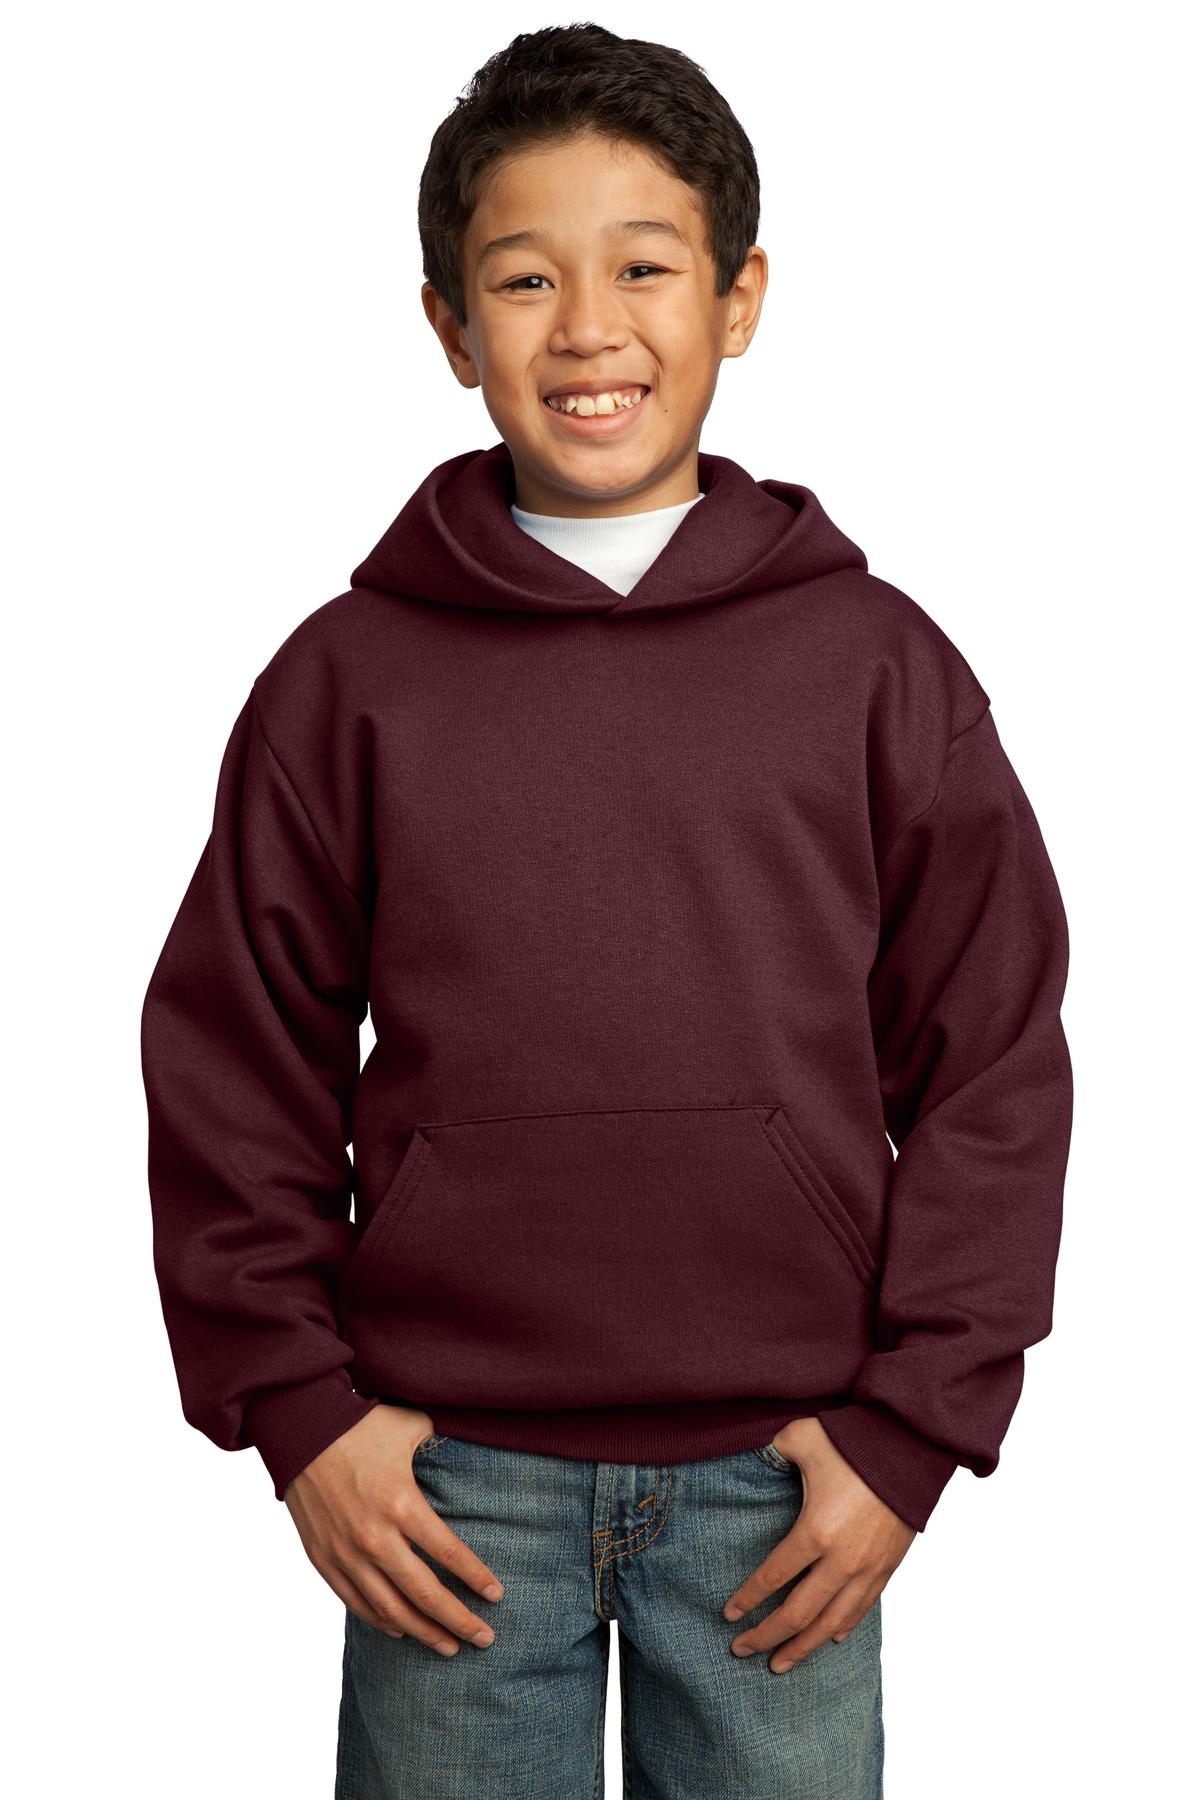 Port & Company ®  - Youth Core Fleece Pullover Hooded Sweatshirt.  PC90YH - Maroon